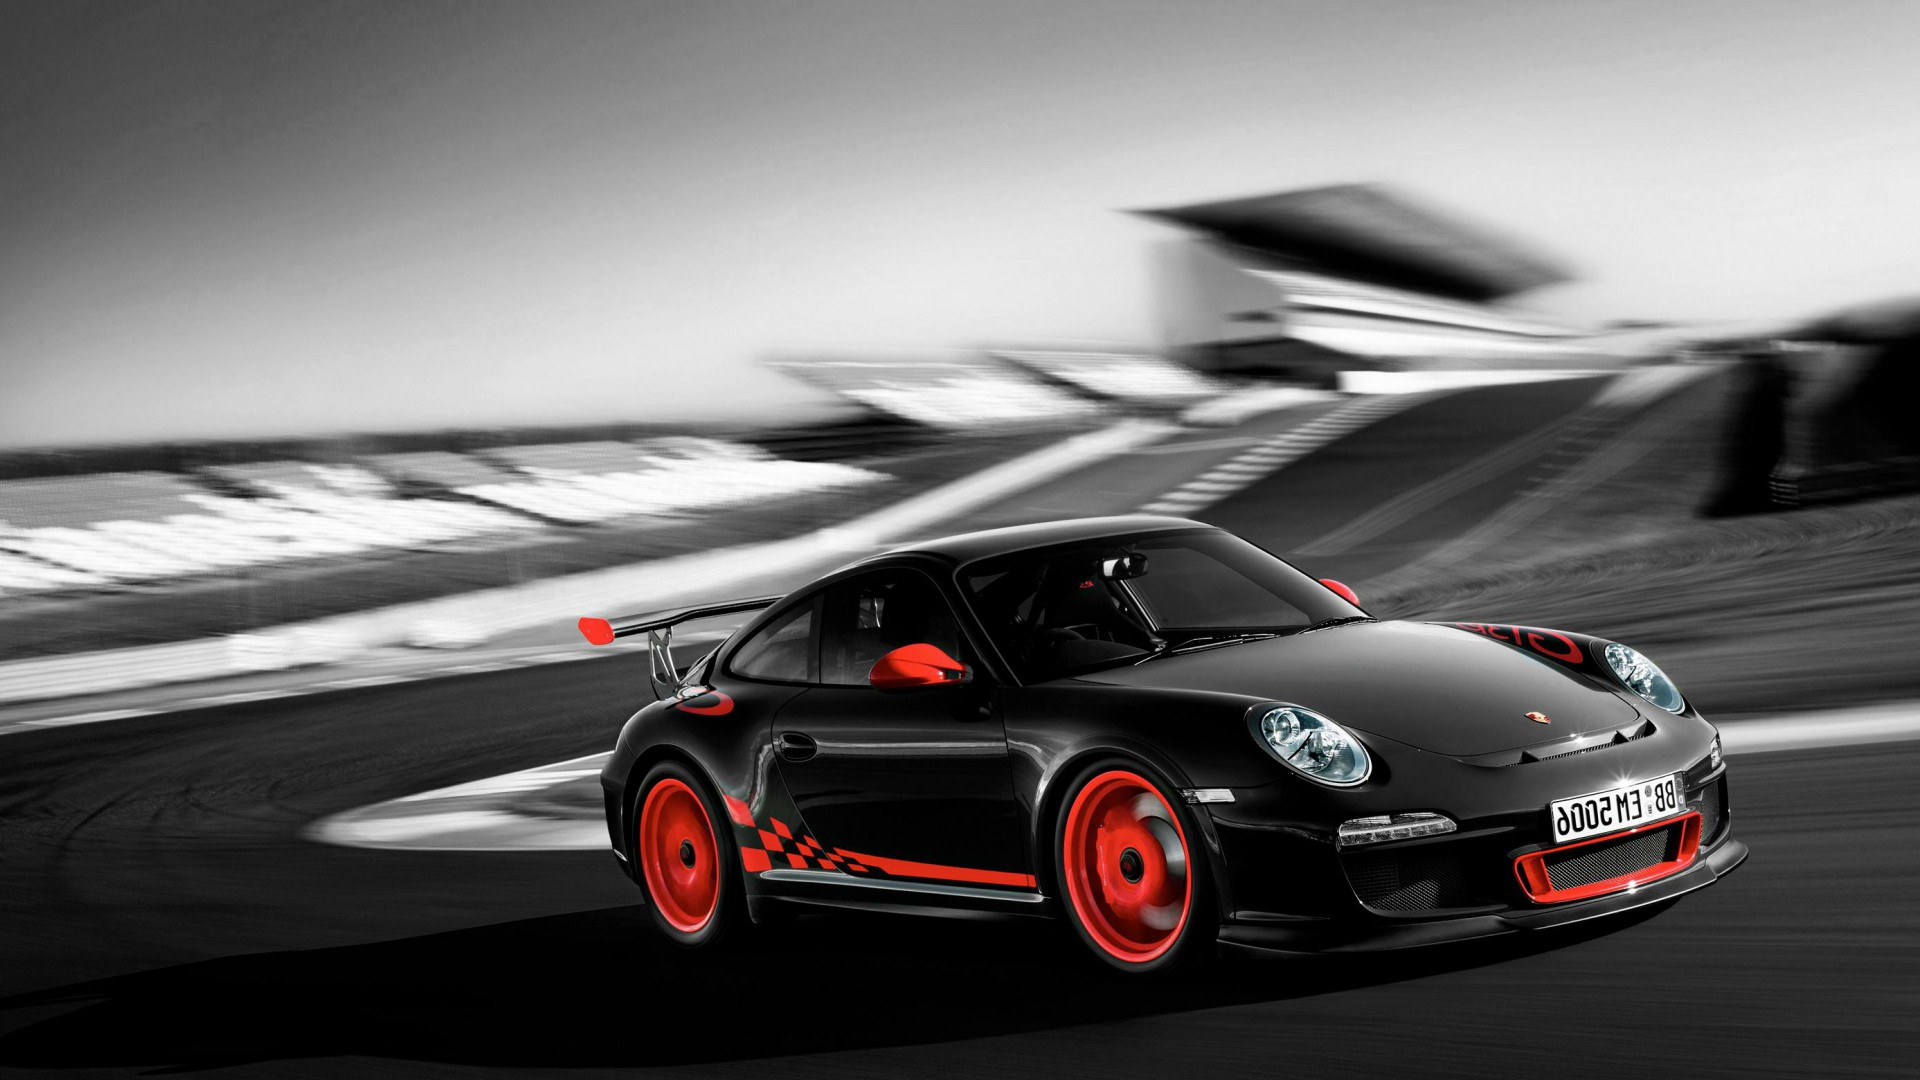 porsche wallpaper 1920x1080 1174 wallpaper cool walldiskpapercom